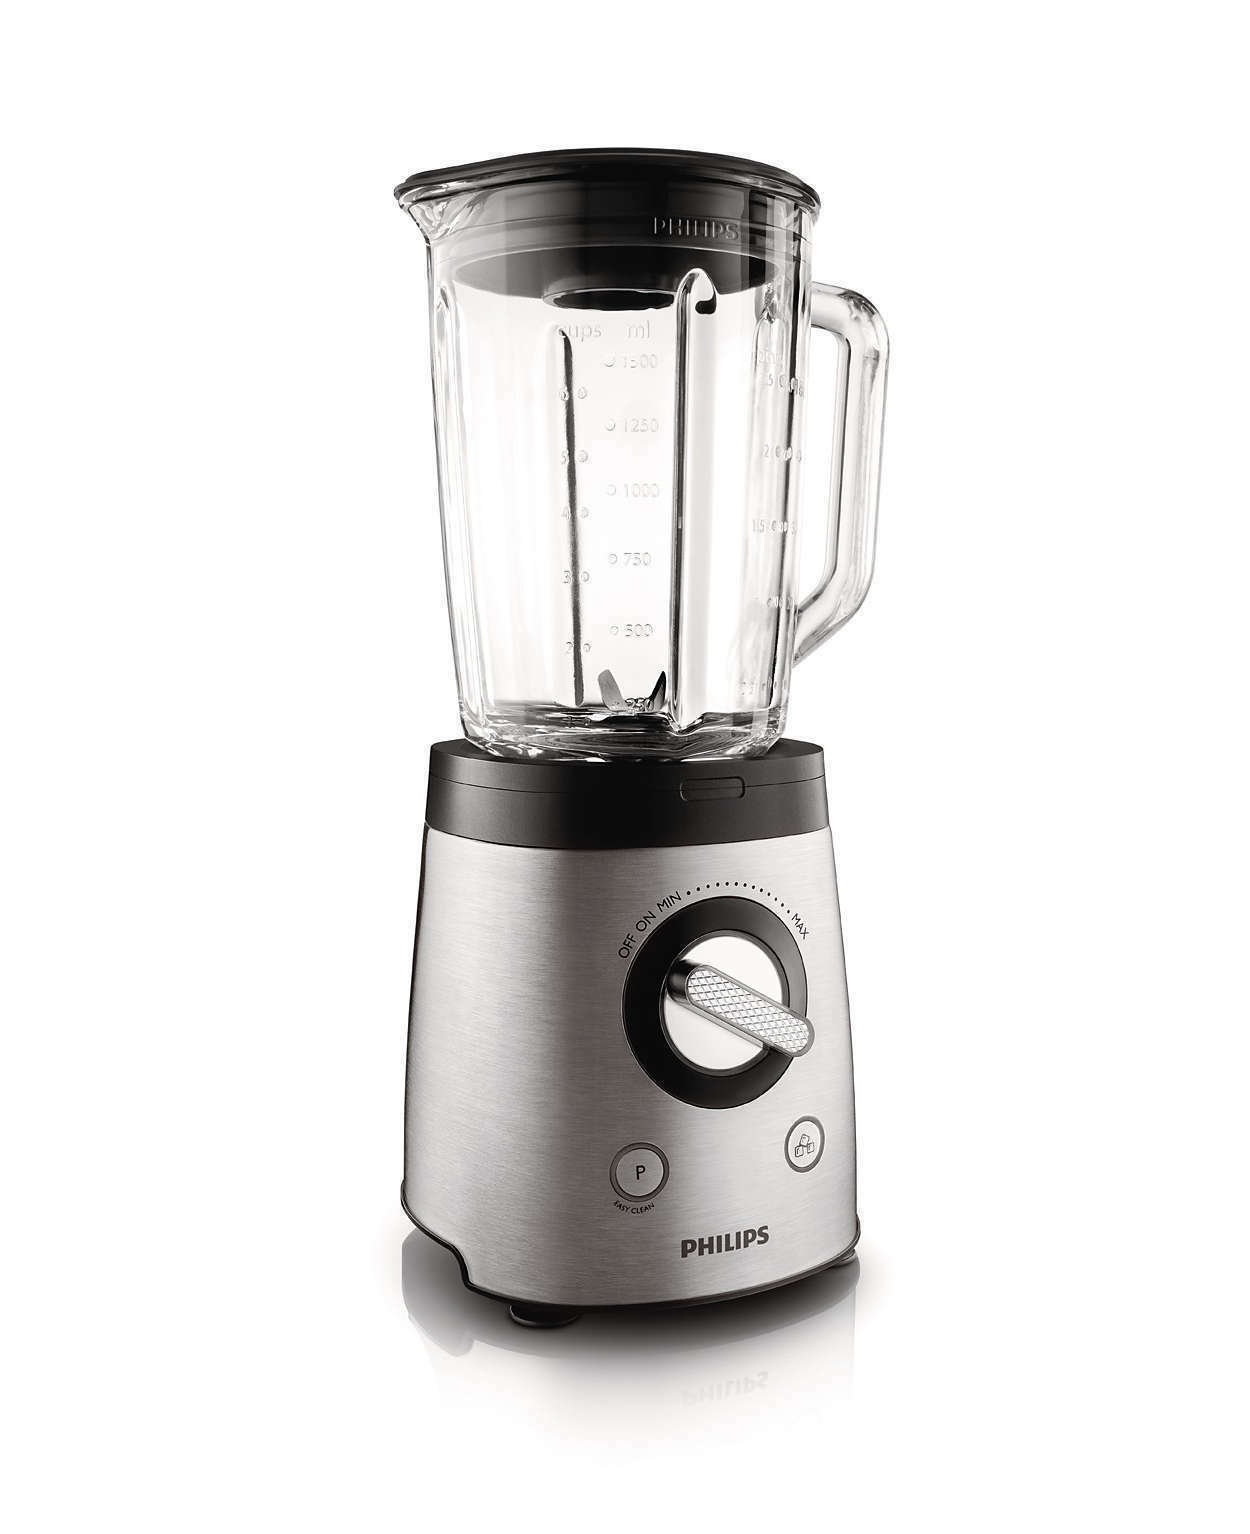 Philips Avance Collection Blender HR2093 00 800 W 2 L Mixeur centrifugeuse Maker Chopper